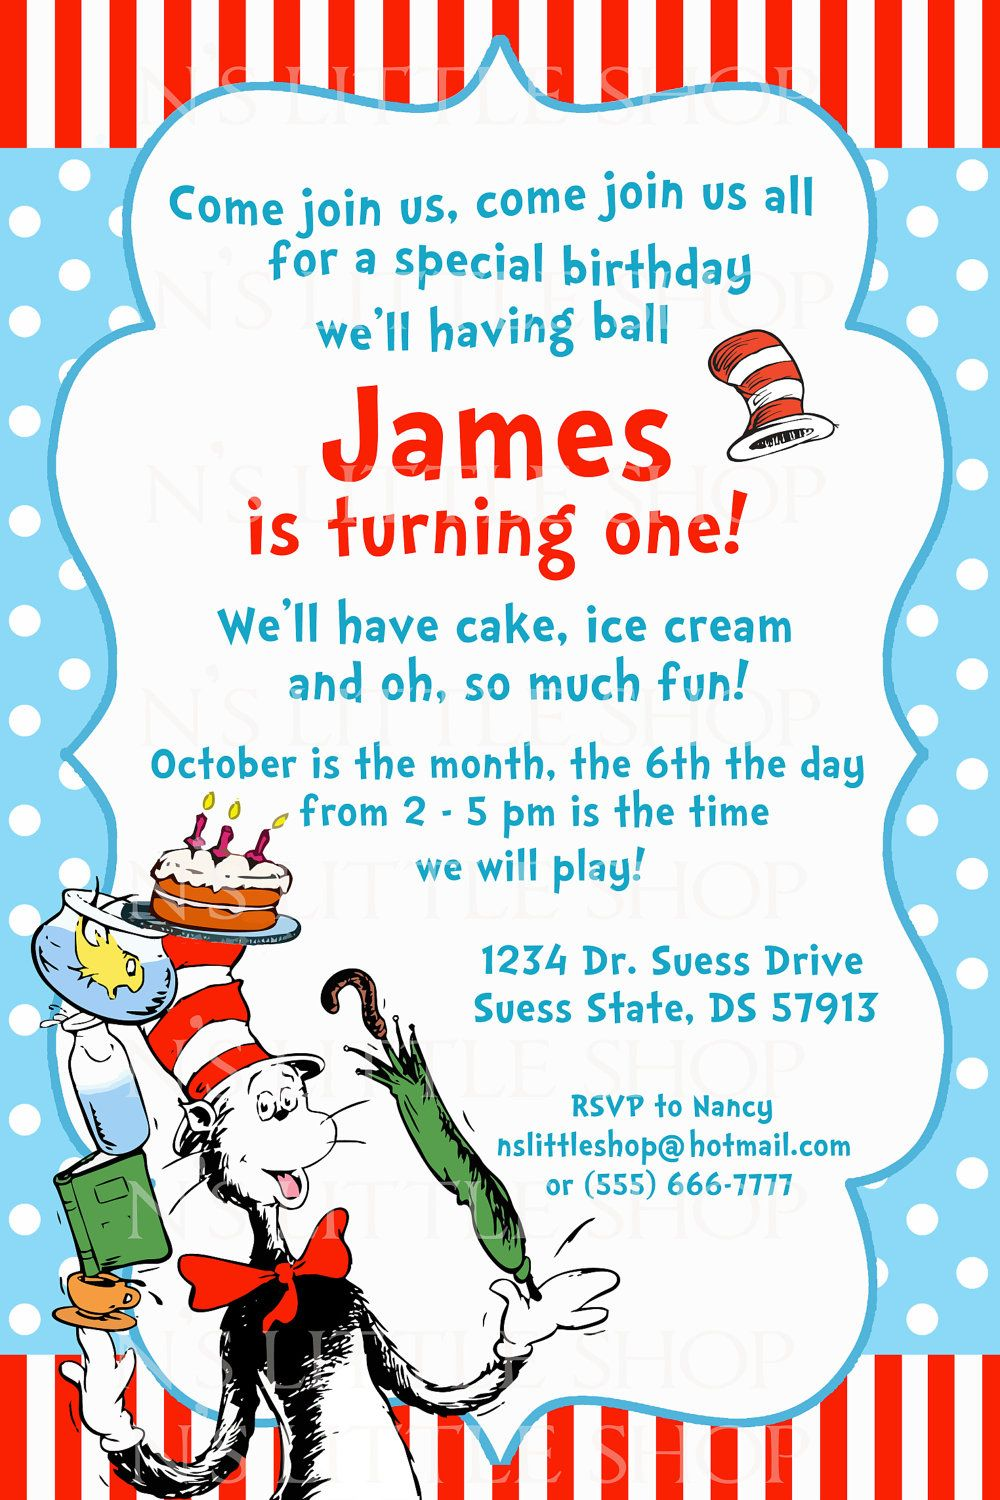 DrSuessinspiredbirthdayinvitationcardbynslittleshop